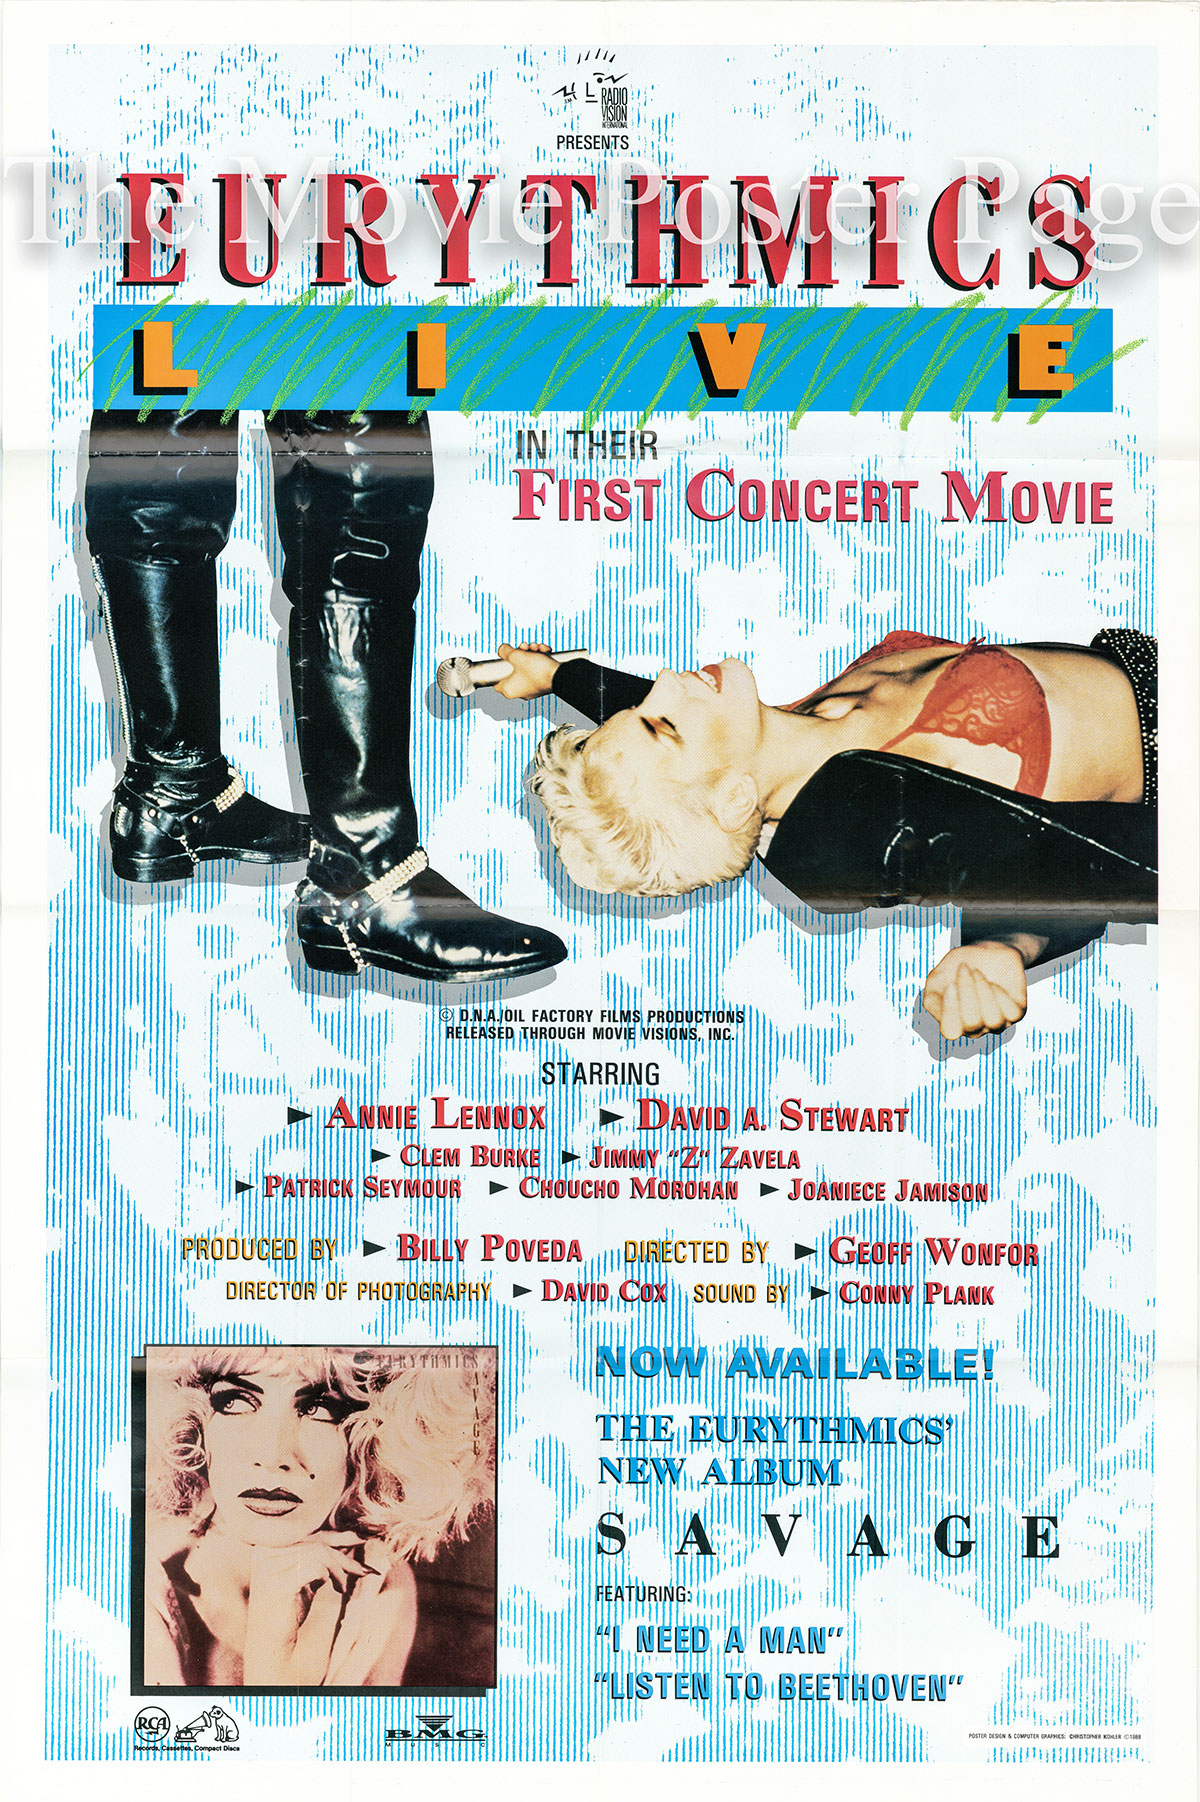 Pictured is a US one-sheet poster for the 1988 Geoff Wonfor film Eurythmics Live starring Annie Lnnox.